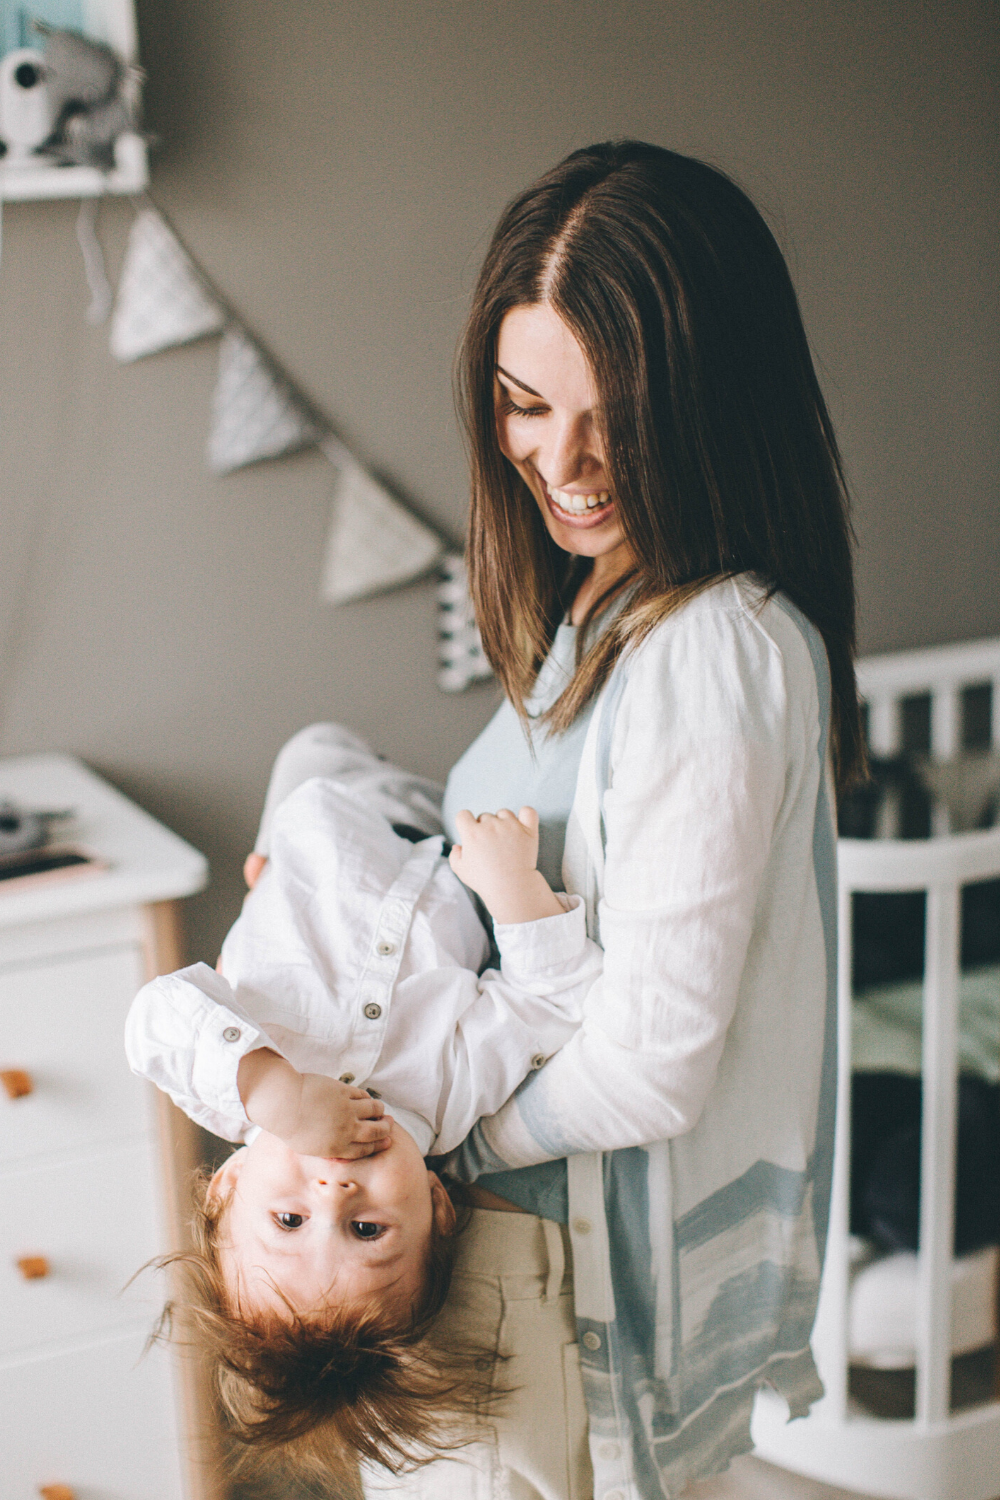 6 Things Our Kids Need From Us (and It's Not a Clean House)